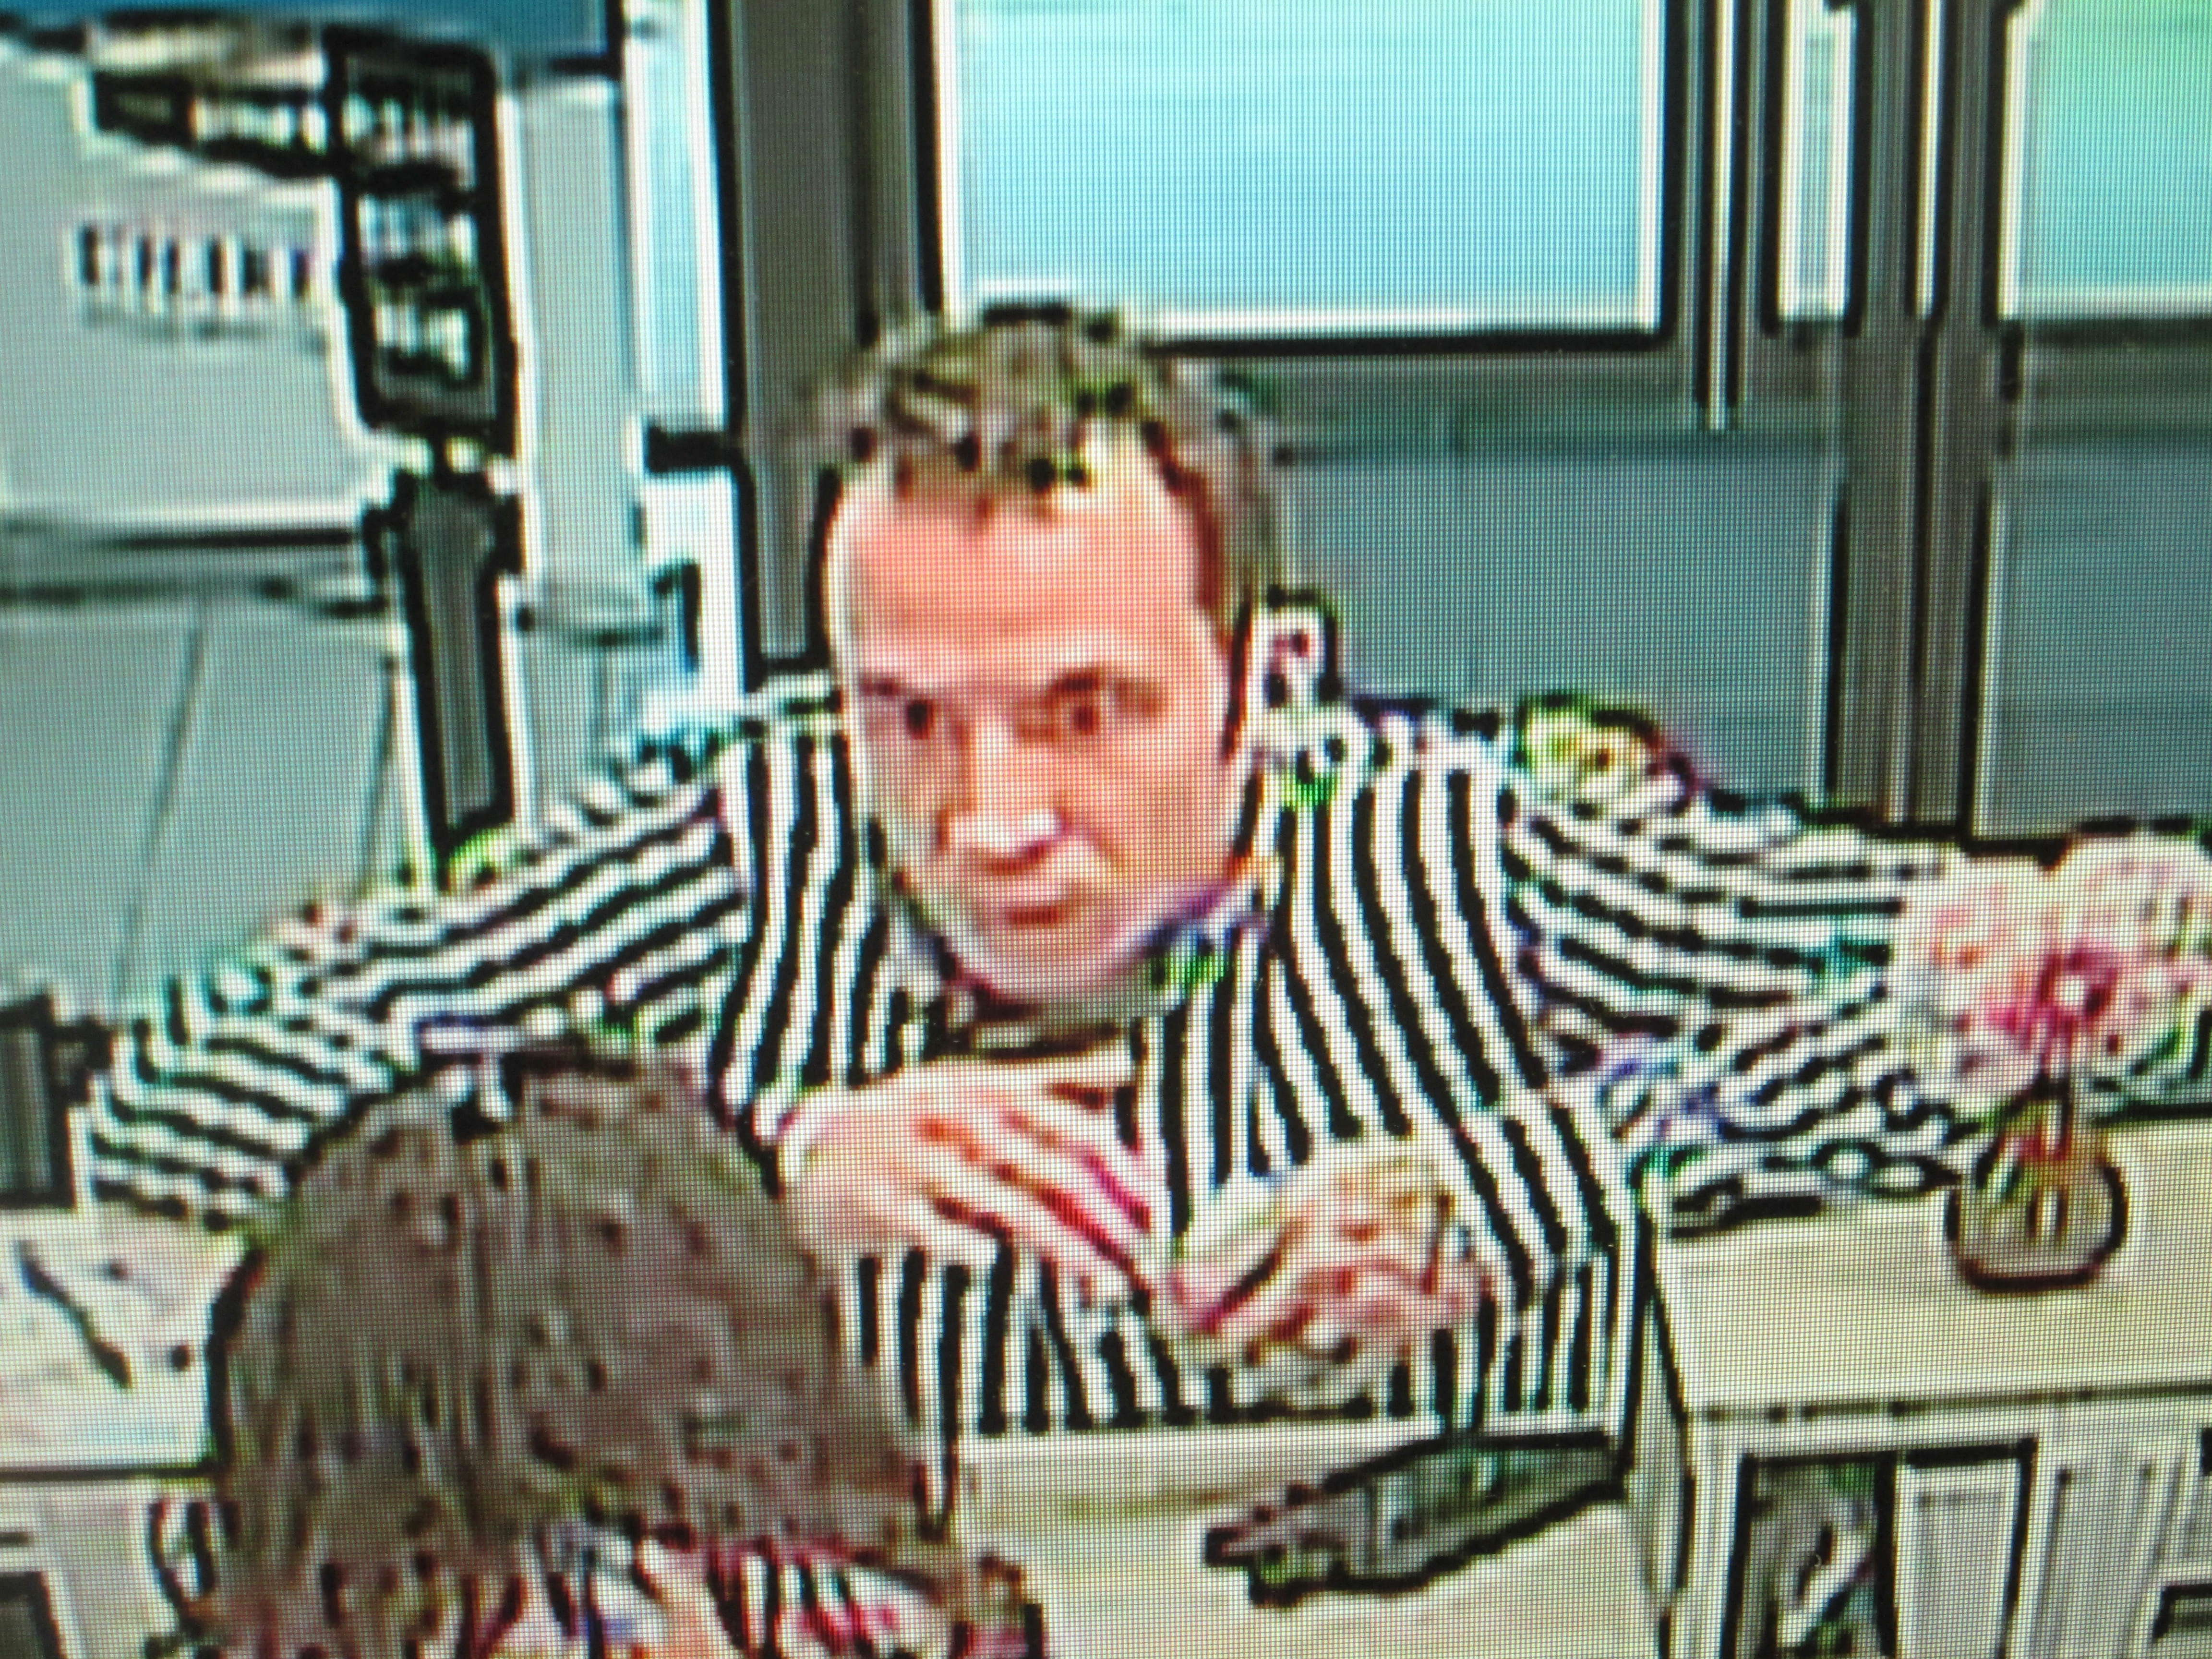 South Kingstown Police searching for credit union robbery suspect. (Photo courtesy South Kingstown Police Dept.)